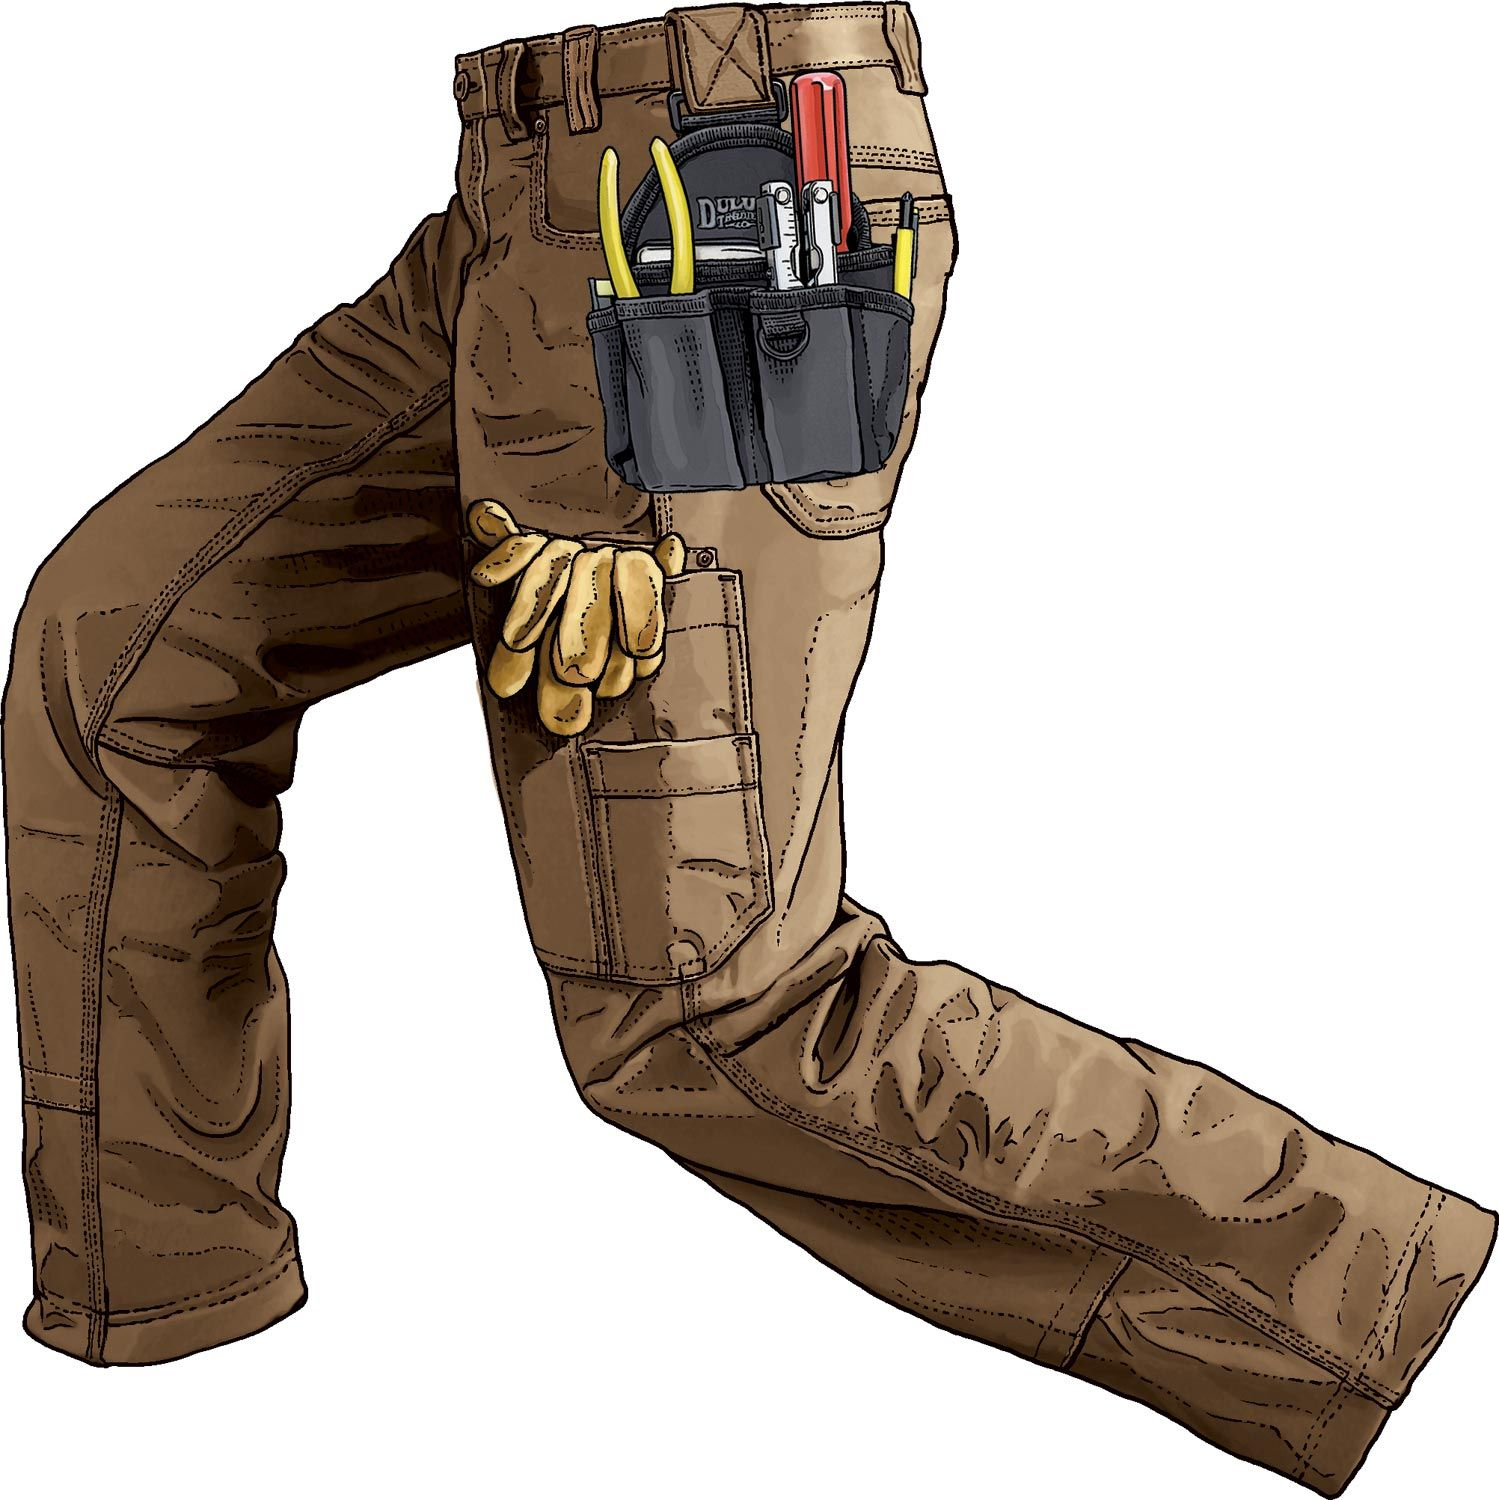 88c5d27ba6 Fire Hose Flex Cargo Pants flex to move with you, stand up to abuse, shed  water & stains, & come loaded with pockets. Only at Duluth Trading Company!